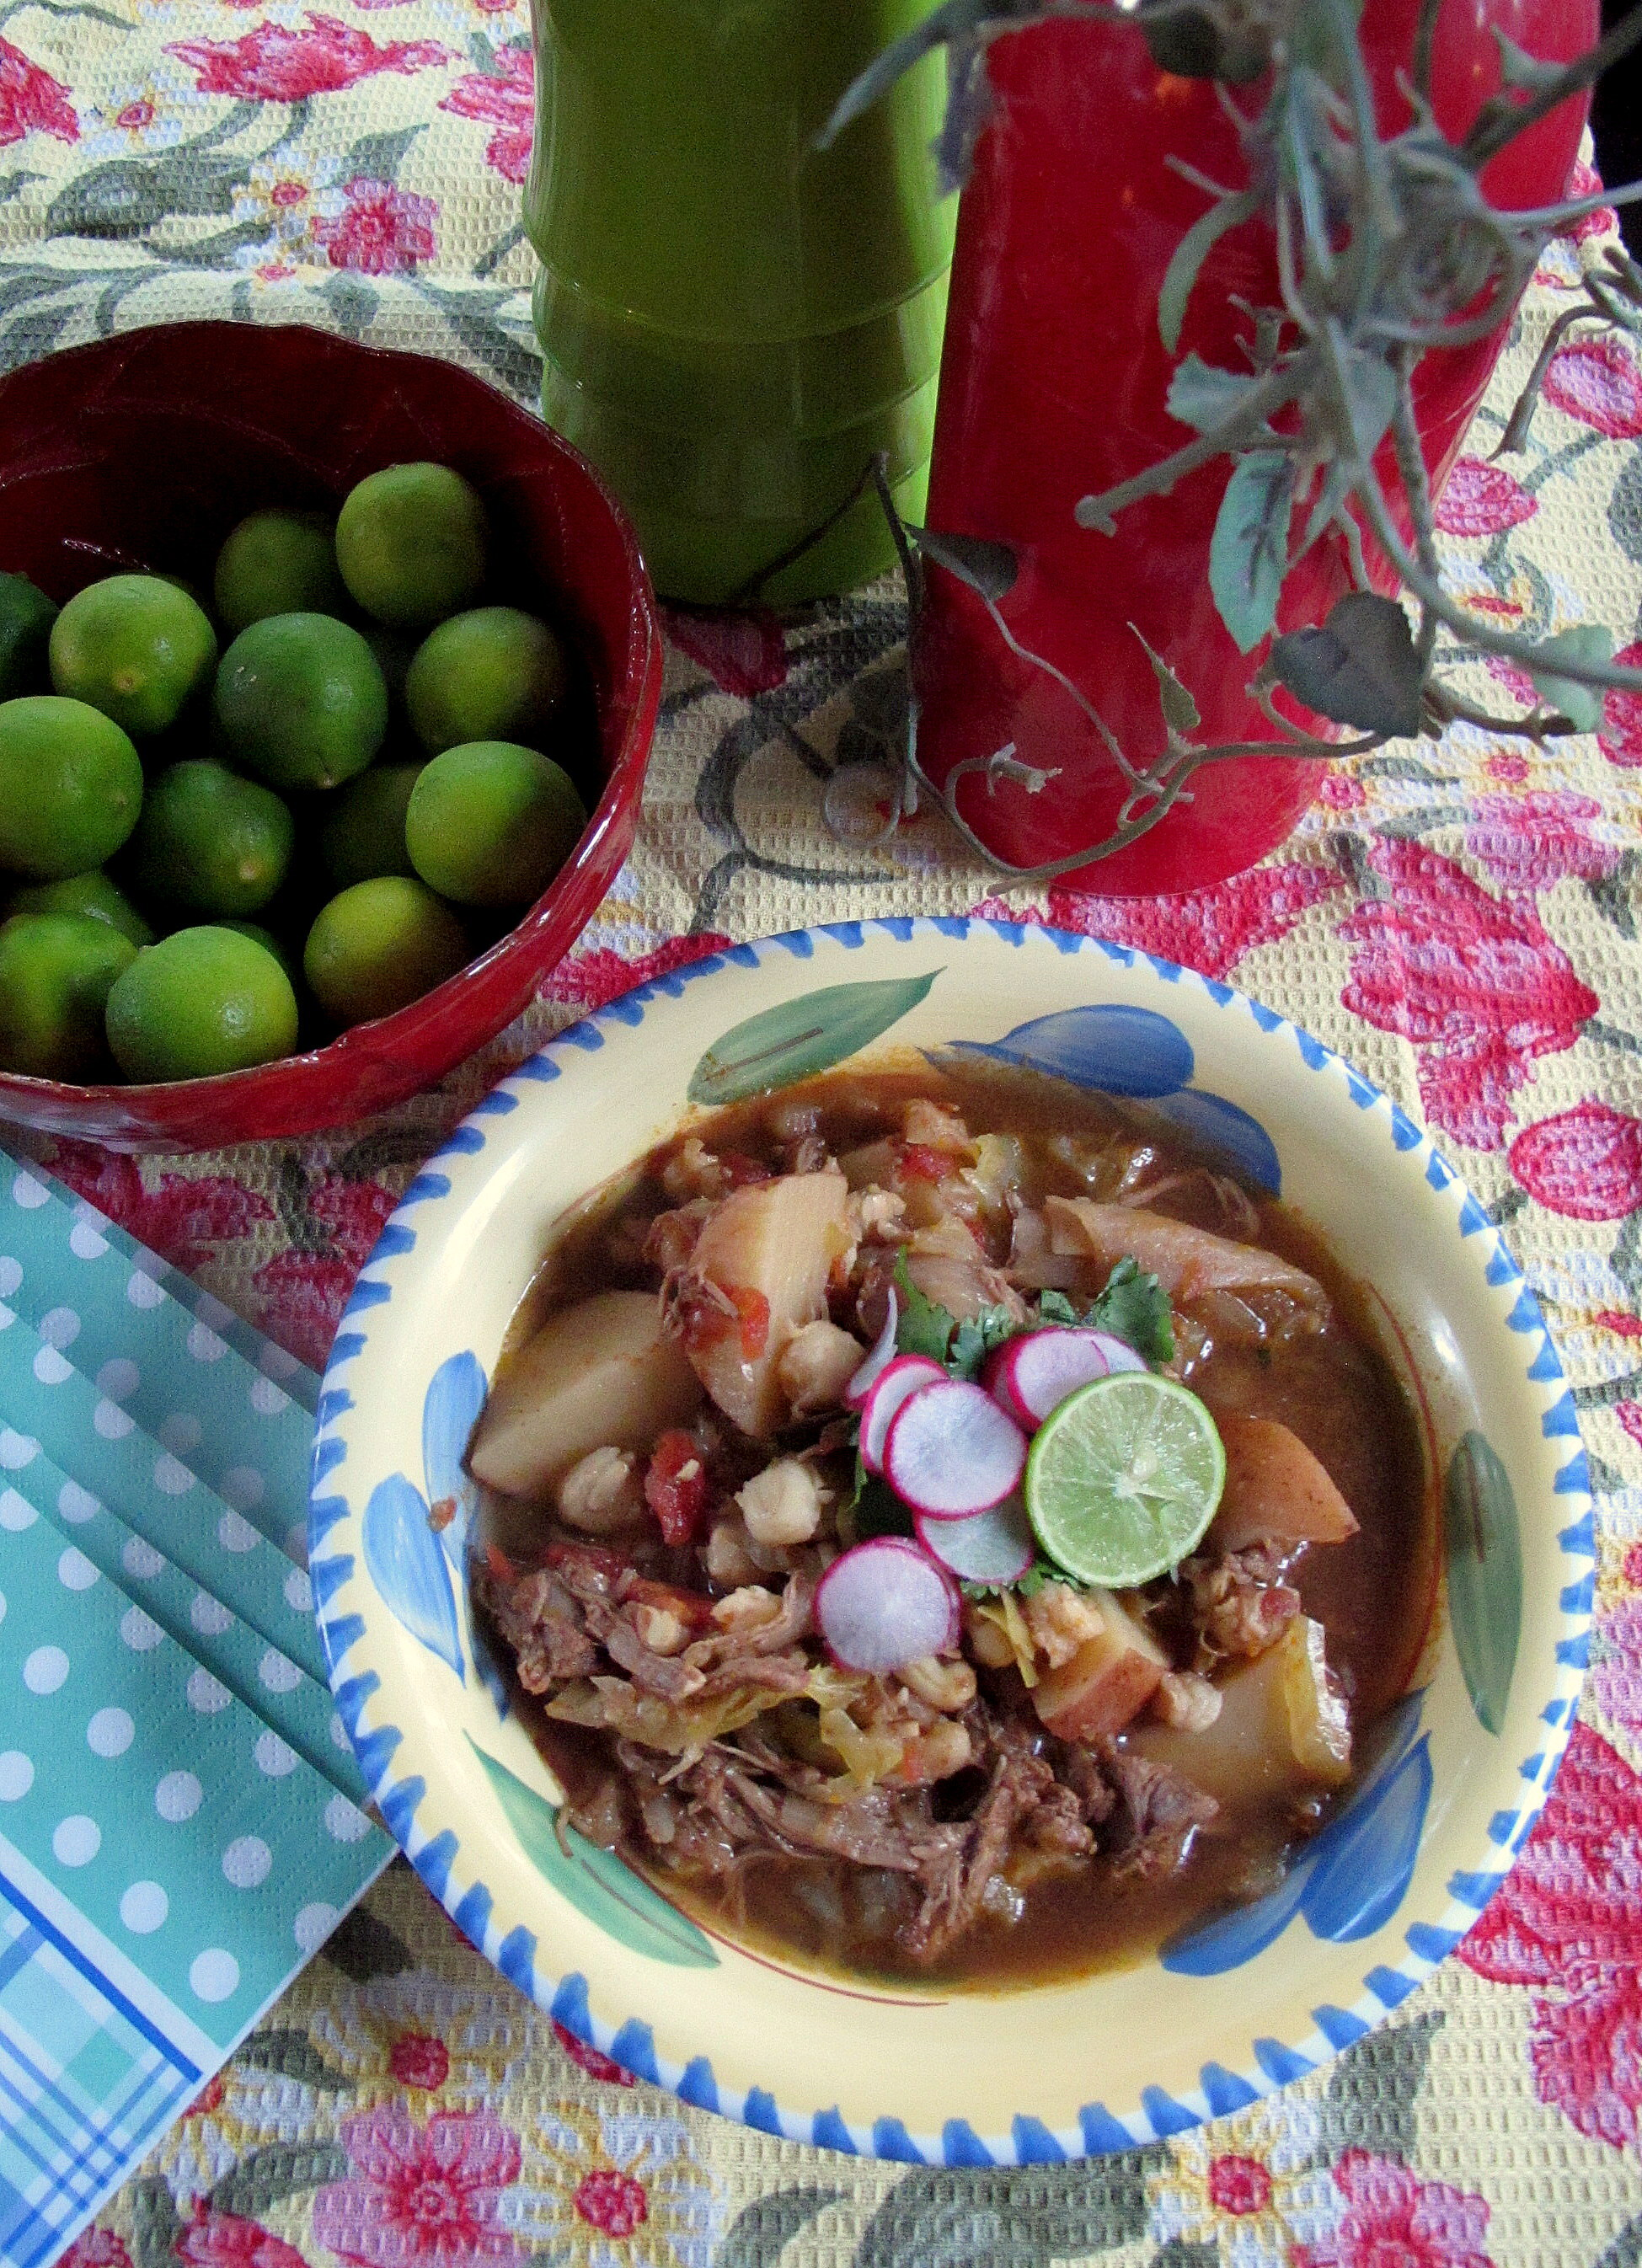 I went to the racetrack today but it was shut, so I just pushed all my money through the gate. — W.C. Fields and Crockpot Beef Pozole (Mexican Stew)